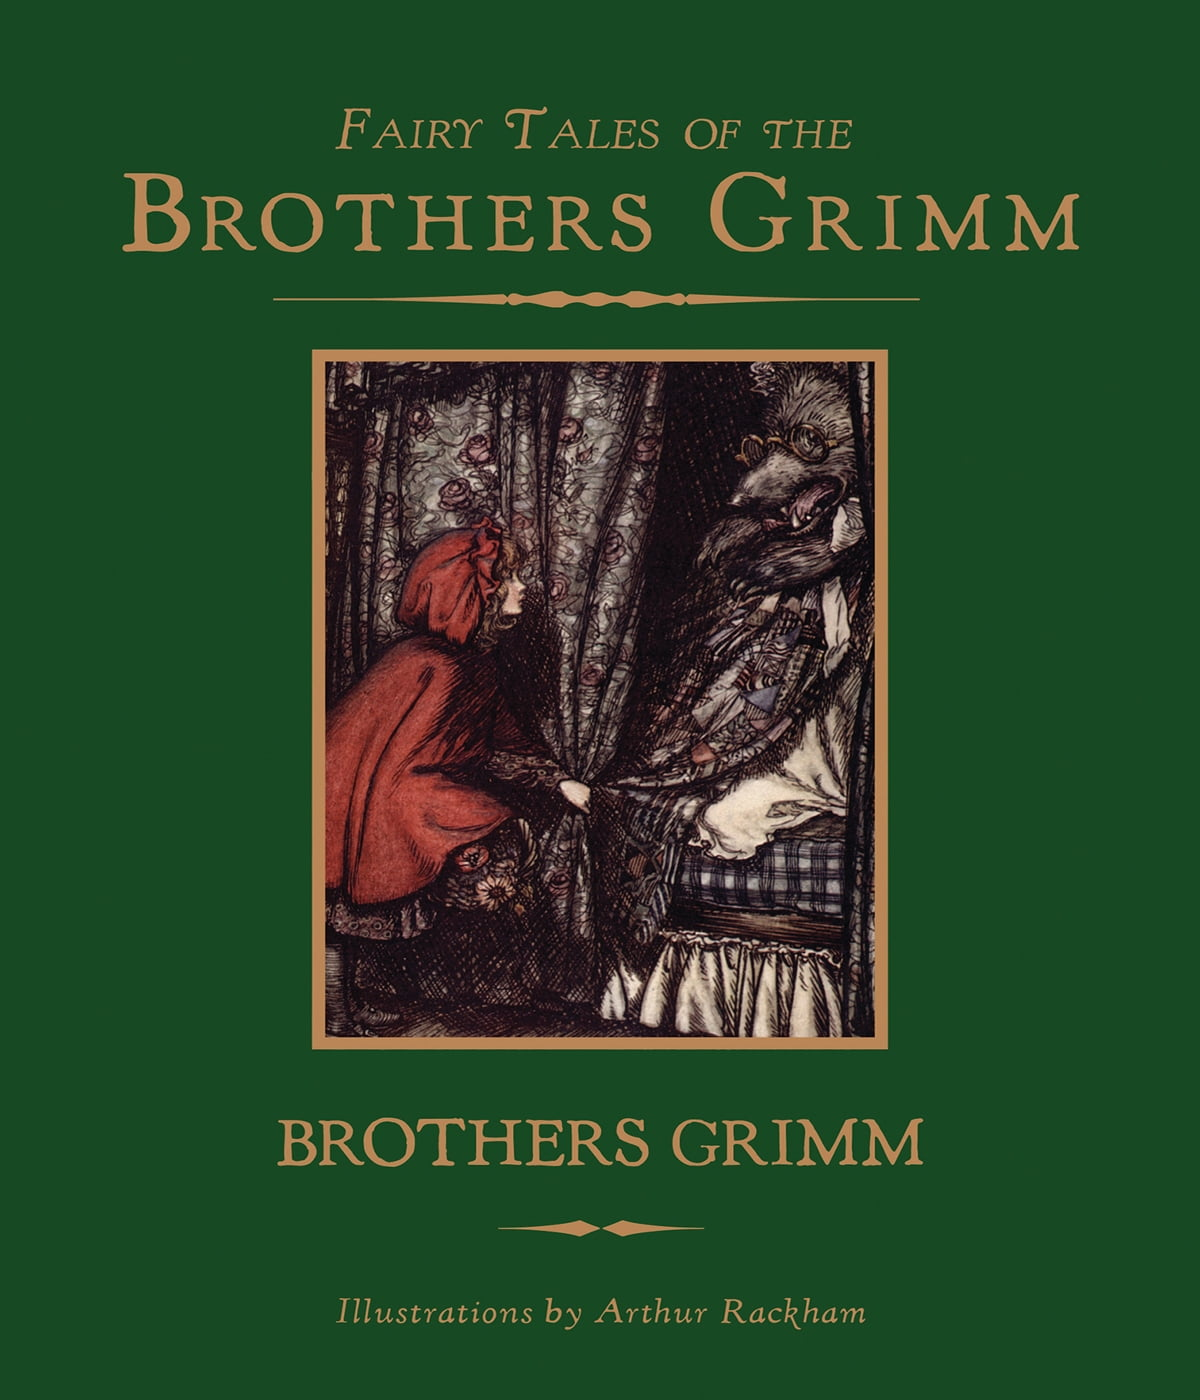 the moral of the fairytale the three spinsters by the brothers grimm The brothers grimm and their tales some information about the two brothers who collected these stories if you use facebook or google+ & enjoyed the three spinsters, please tell your friends and let us know to find more like it for you.